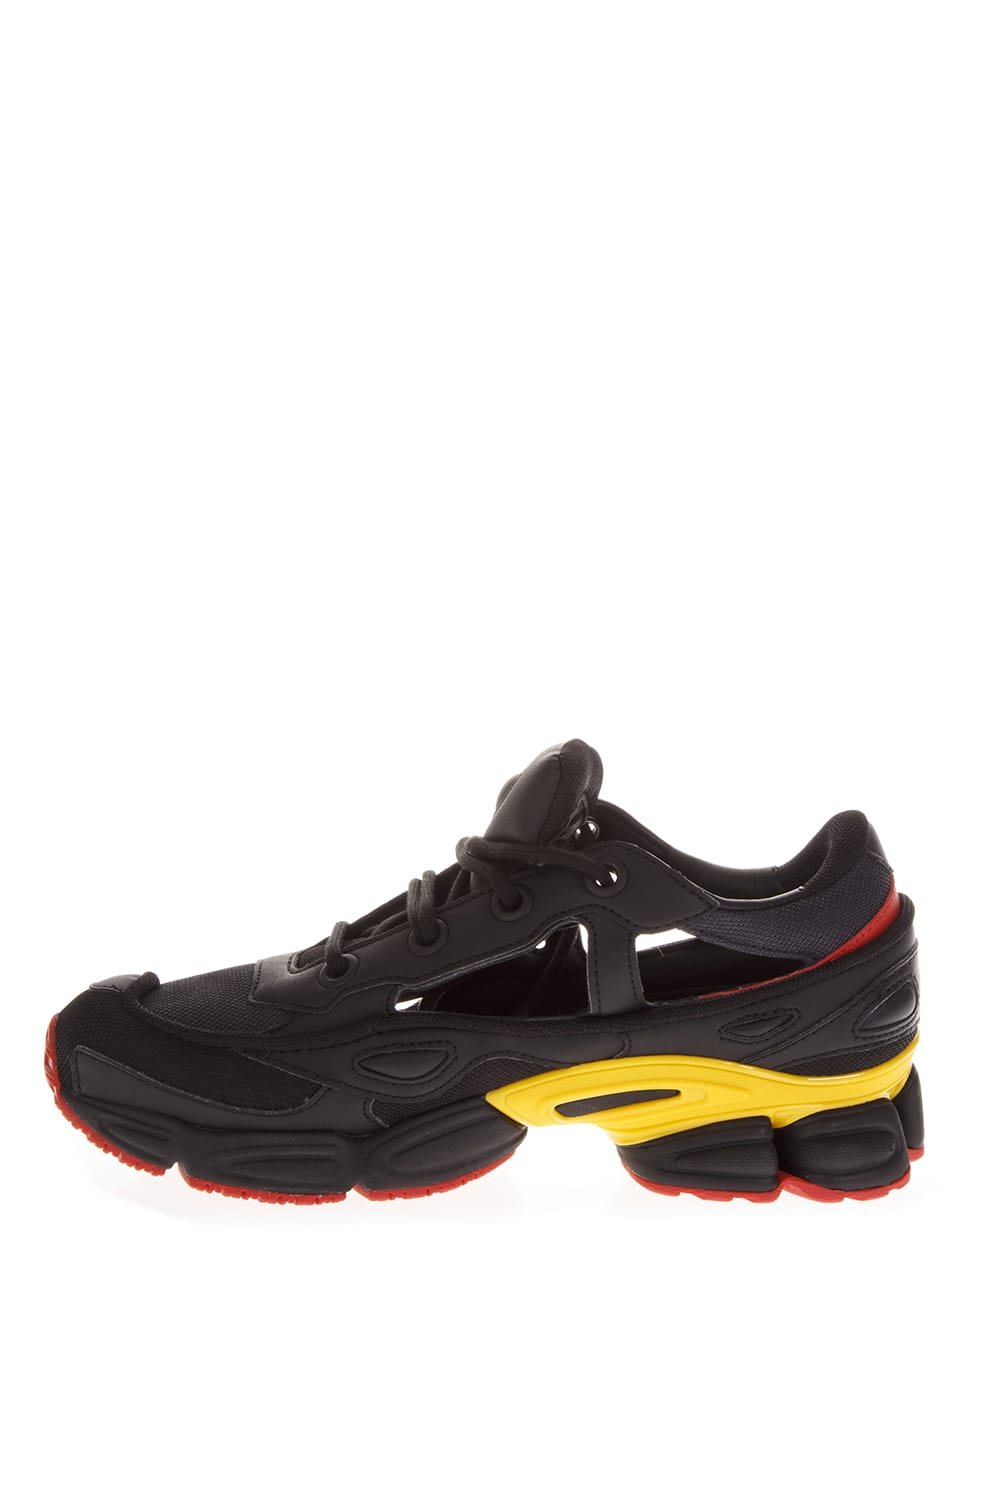 detailed look 721dd 09cc0 Best price on the market at italist | Adidas By Raf Simons Adidas By Raf  Simons Black Replicant Ozweego Sneakers By Raf Simons